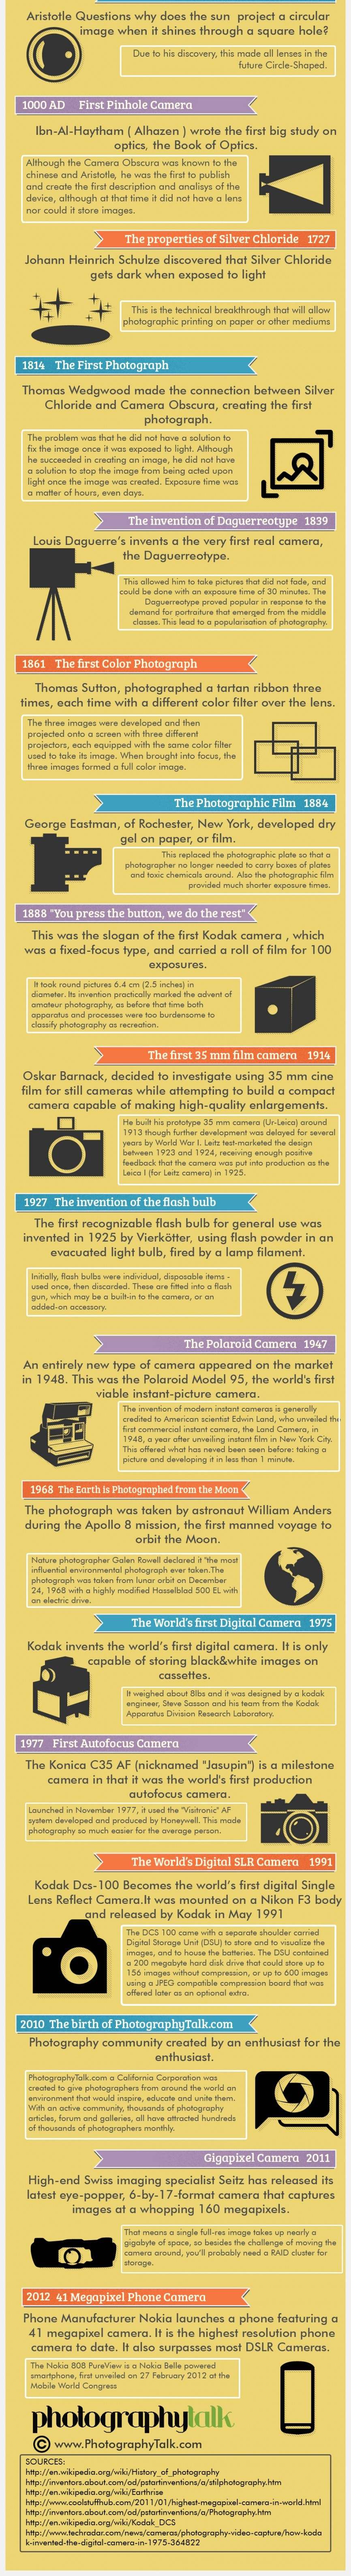 evolution of photogaphy infographic04